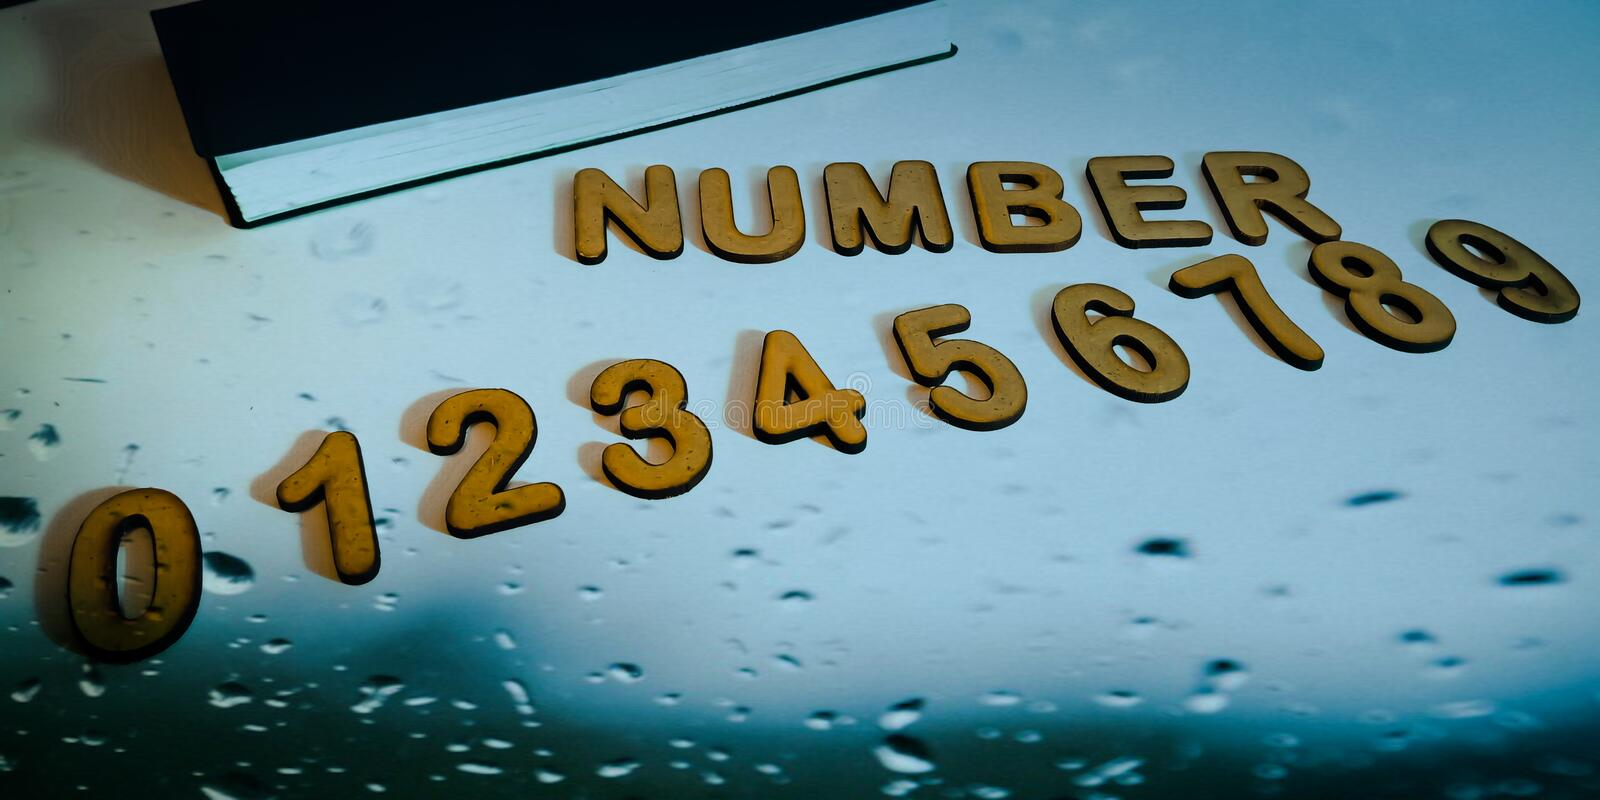 numbers displayed on water drop abstract background with diary royalty free stock photography